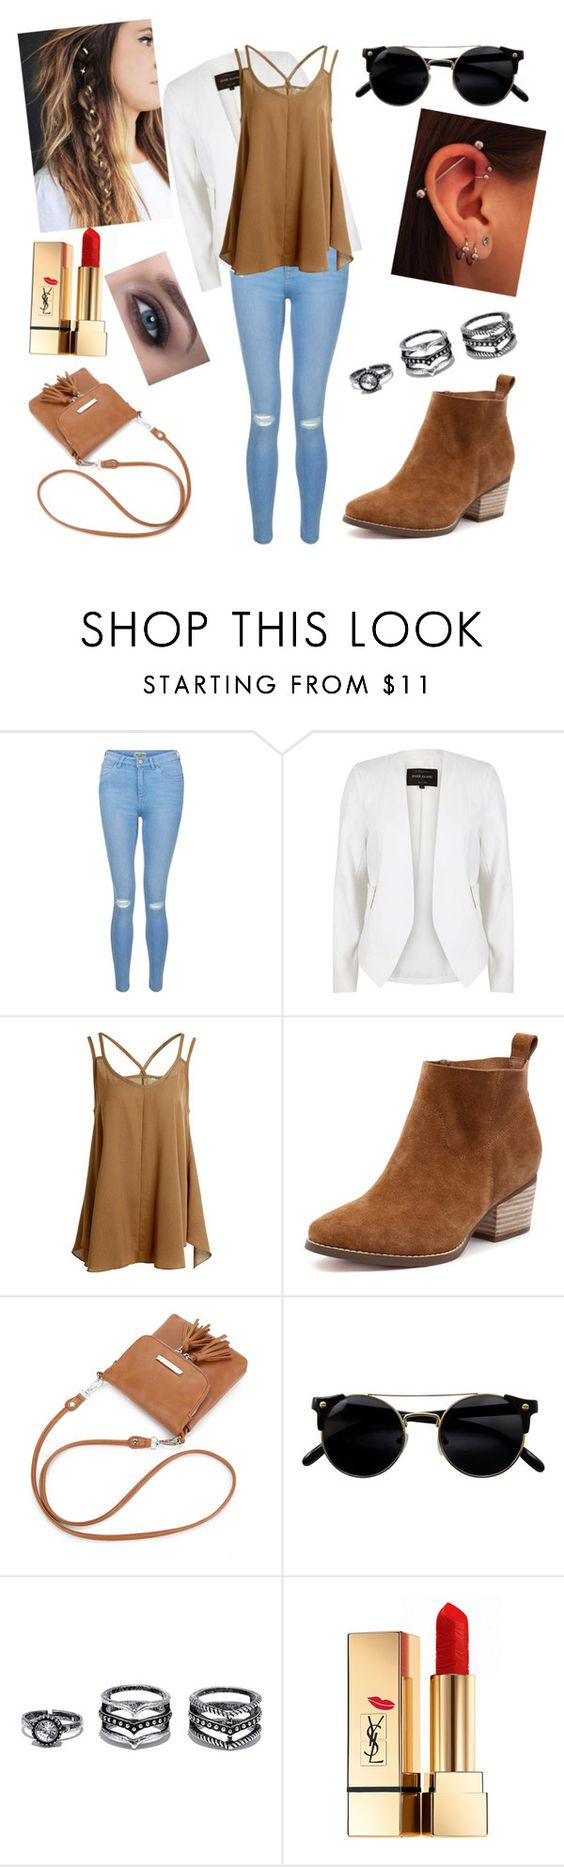 """jb"" by nayawal on Polyvore featuring moda, New Look, River Island, Lulu*s y Yves Saint Laurent"